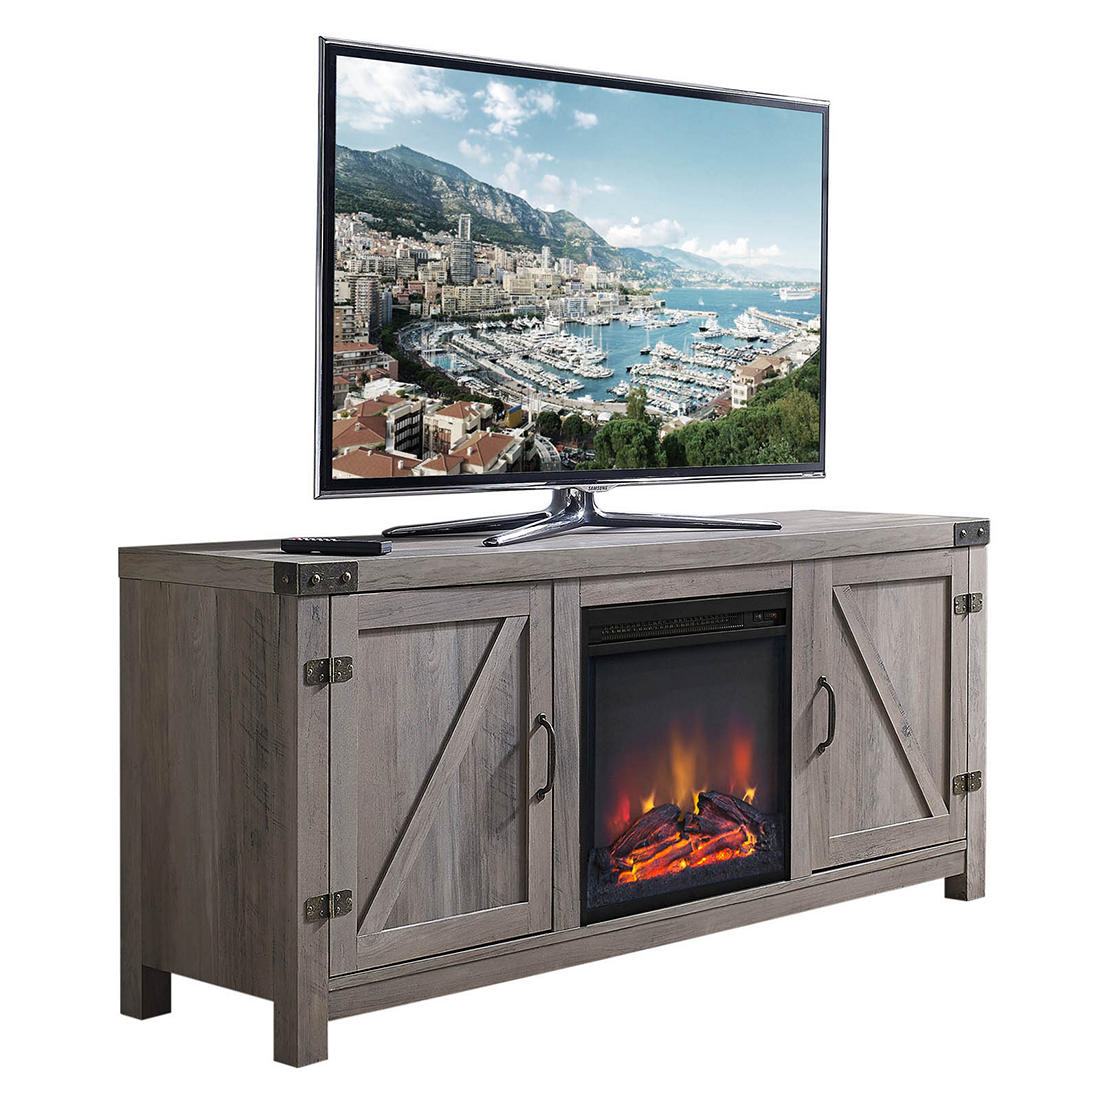 58 W Trends Emerson Fireplace Tv Stand Grey Wash Bjs Wholesale Club